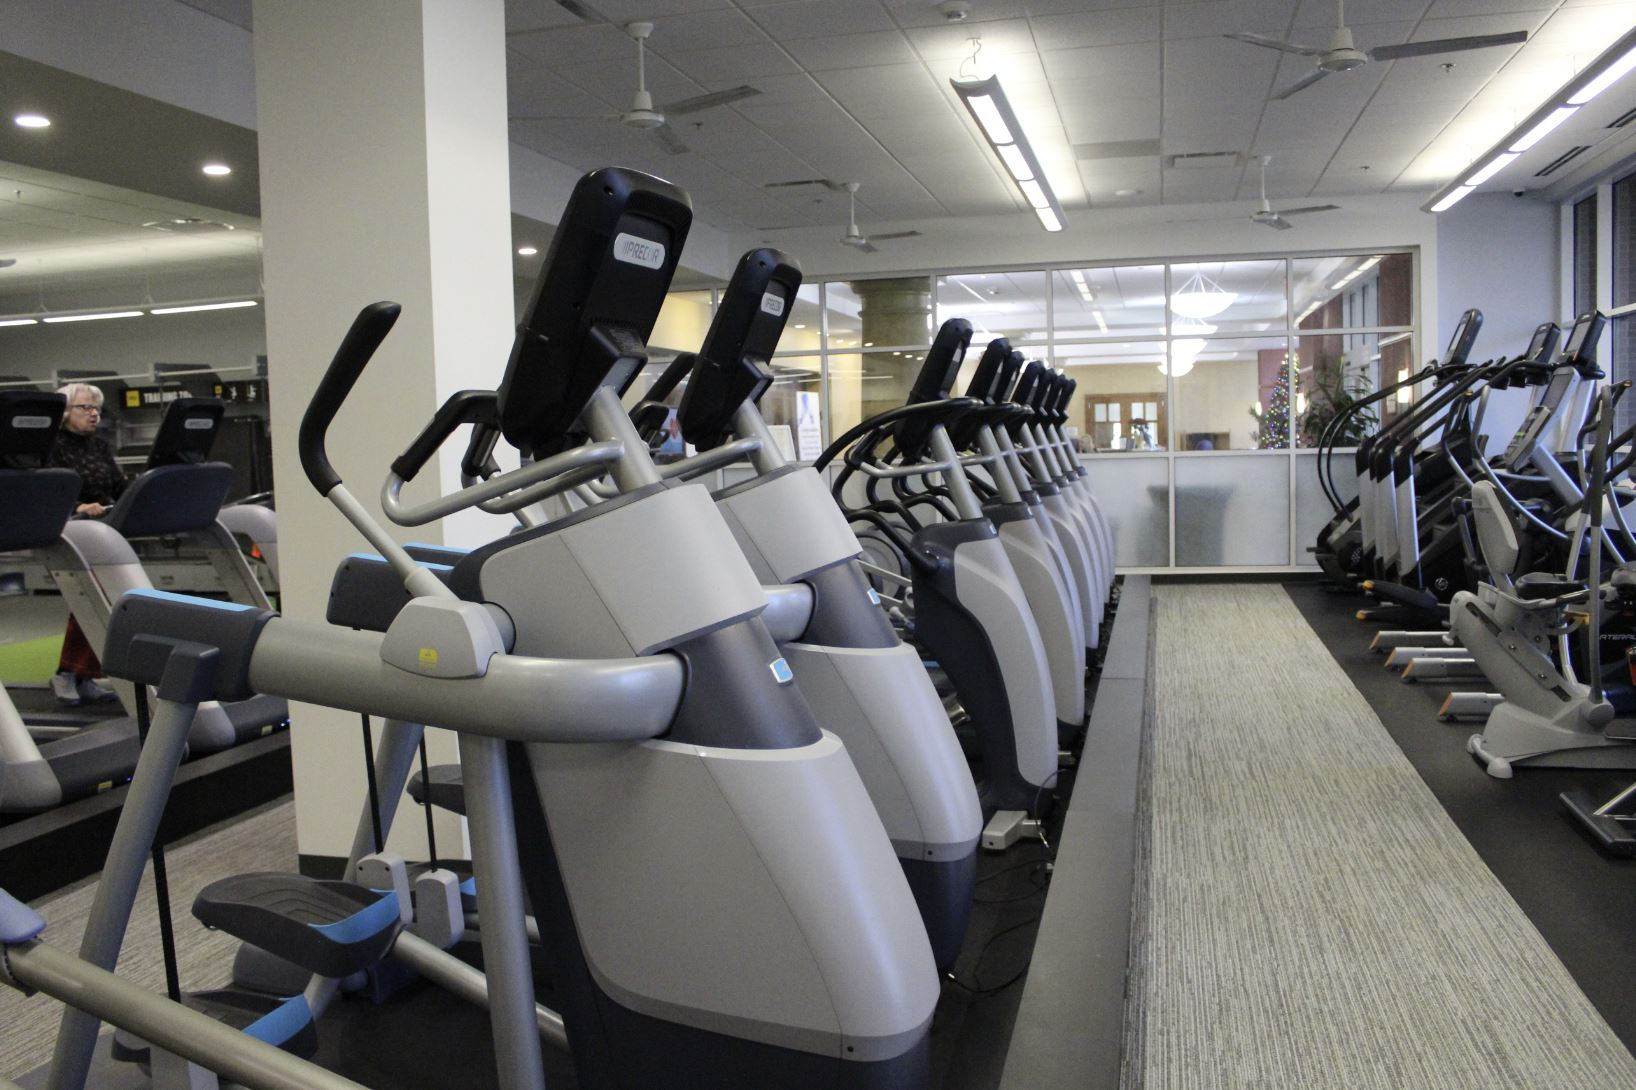 Gym in Charlottesville, VA   ACAC Family Fitness Center